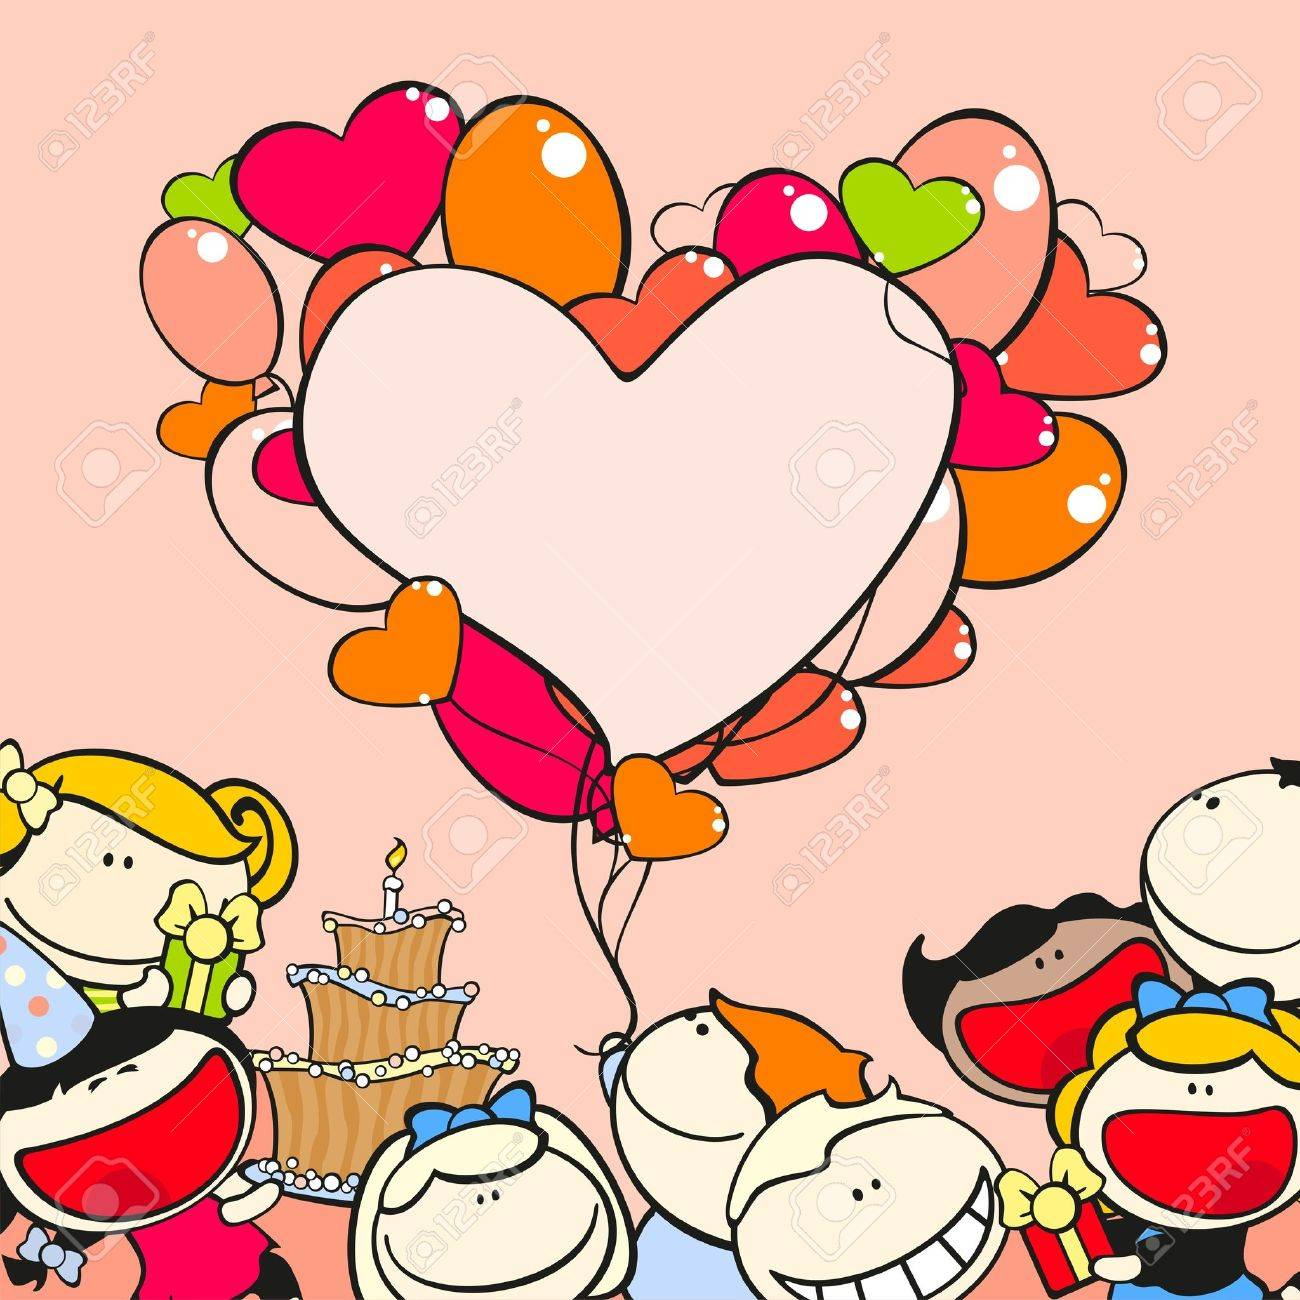 Birthday Frame With Kids And Balloons Royalty Free Cliparts Vectors